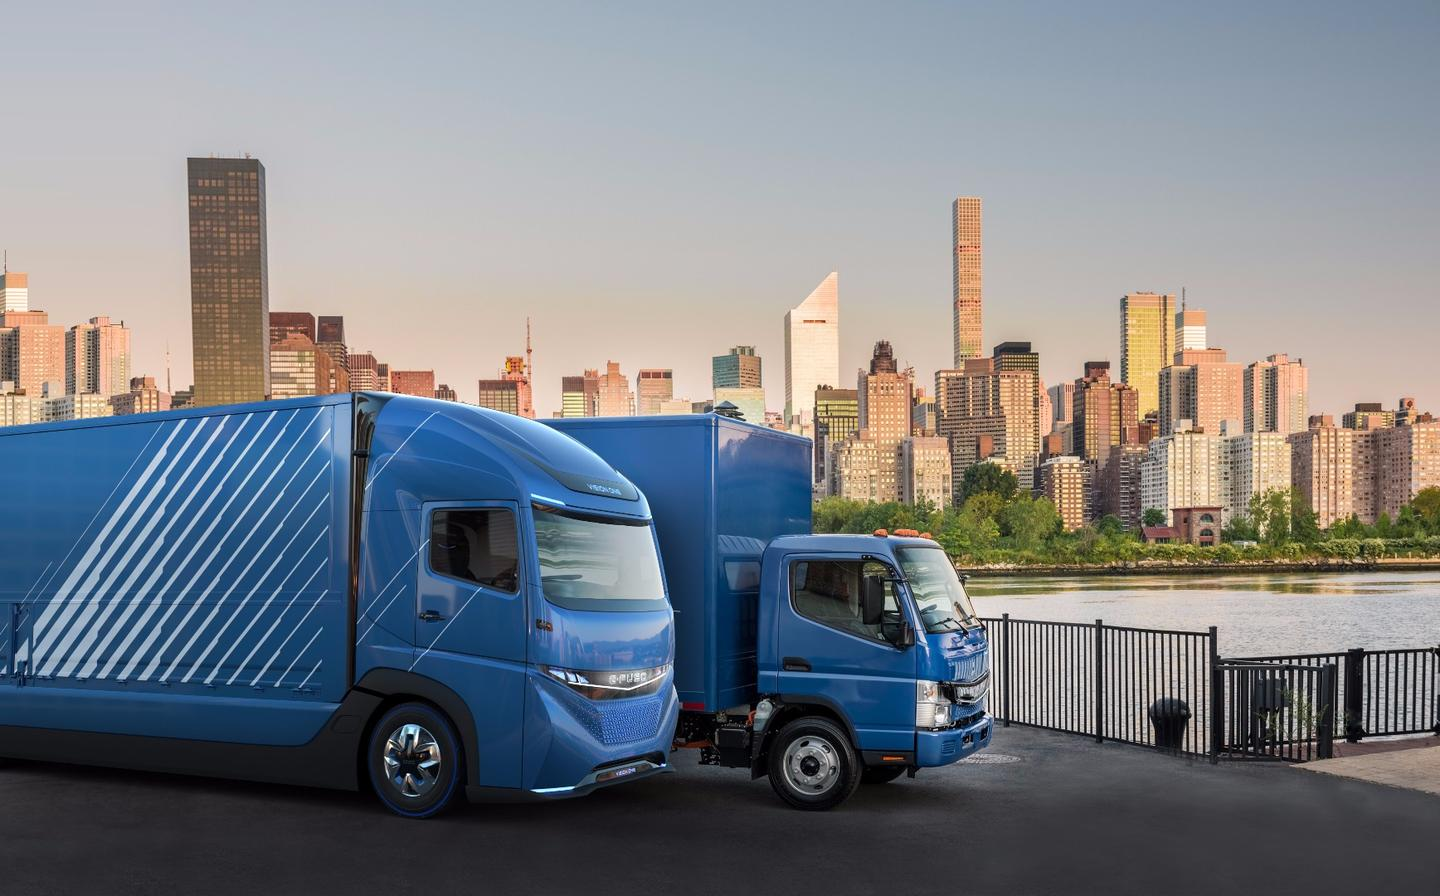 The E-Fuso Vision Onesits alongside the eCanter truck, which launched in 2017